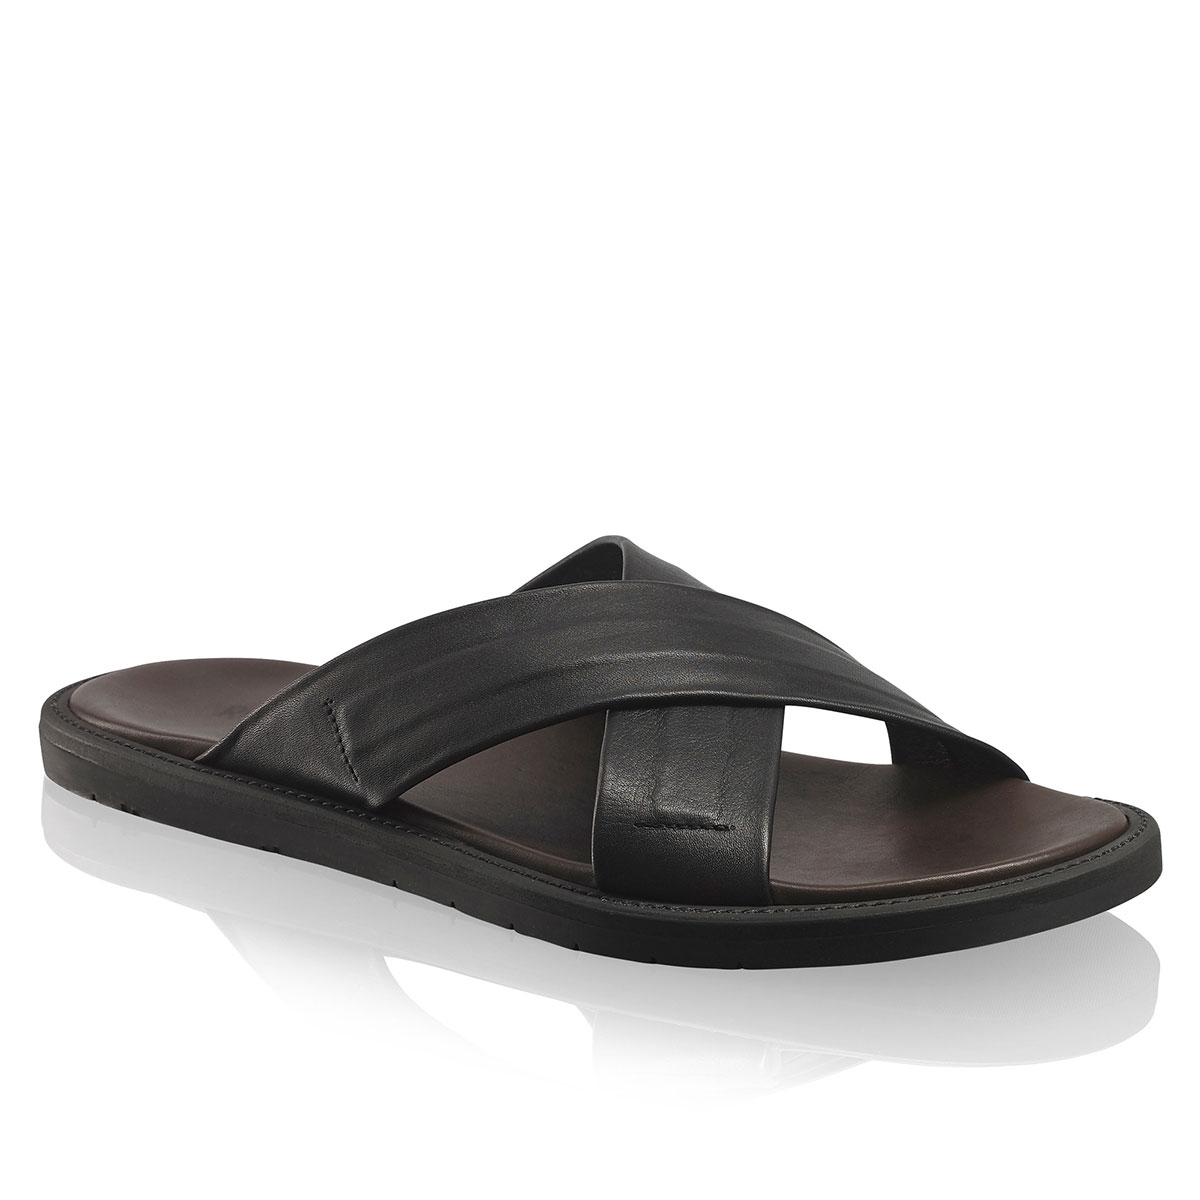 Russell And Bromley ARTEMIS Crossover Sandal